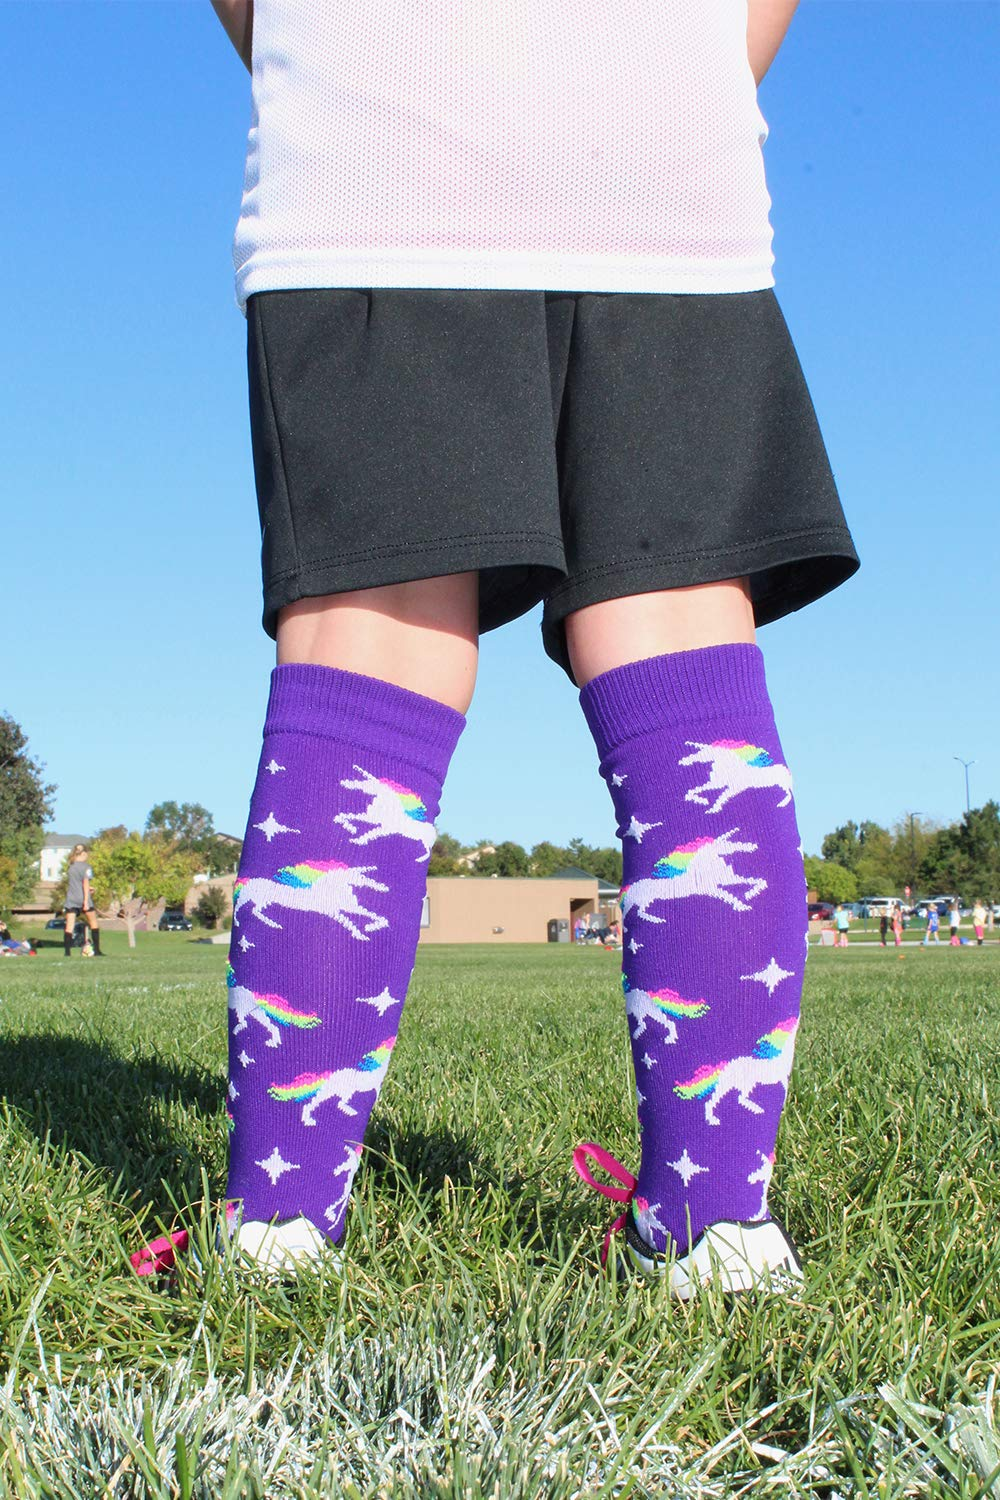 MadSportsStuff Neon Rainbow Unicorn Athletic Over The Calf Socks 7